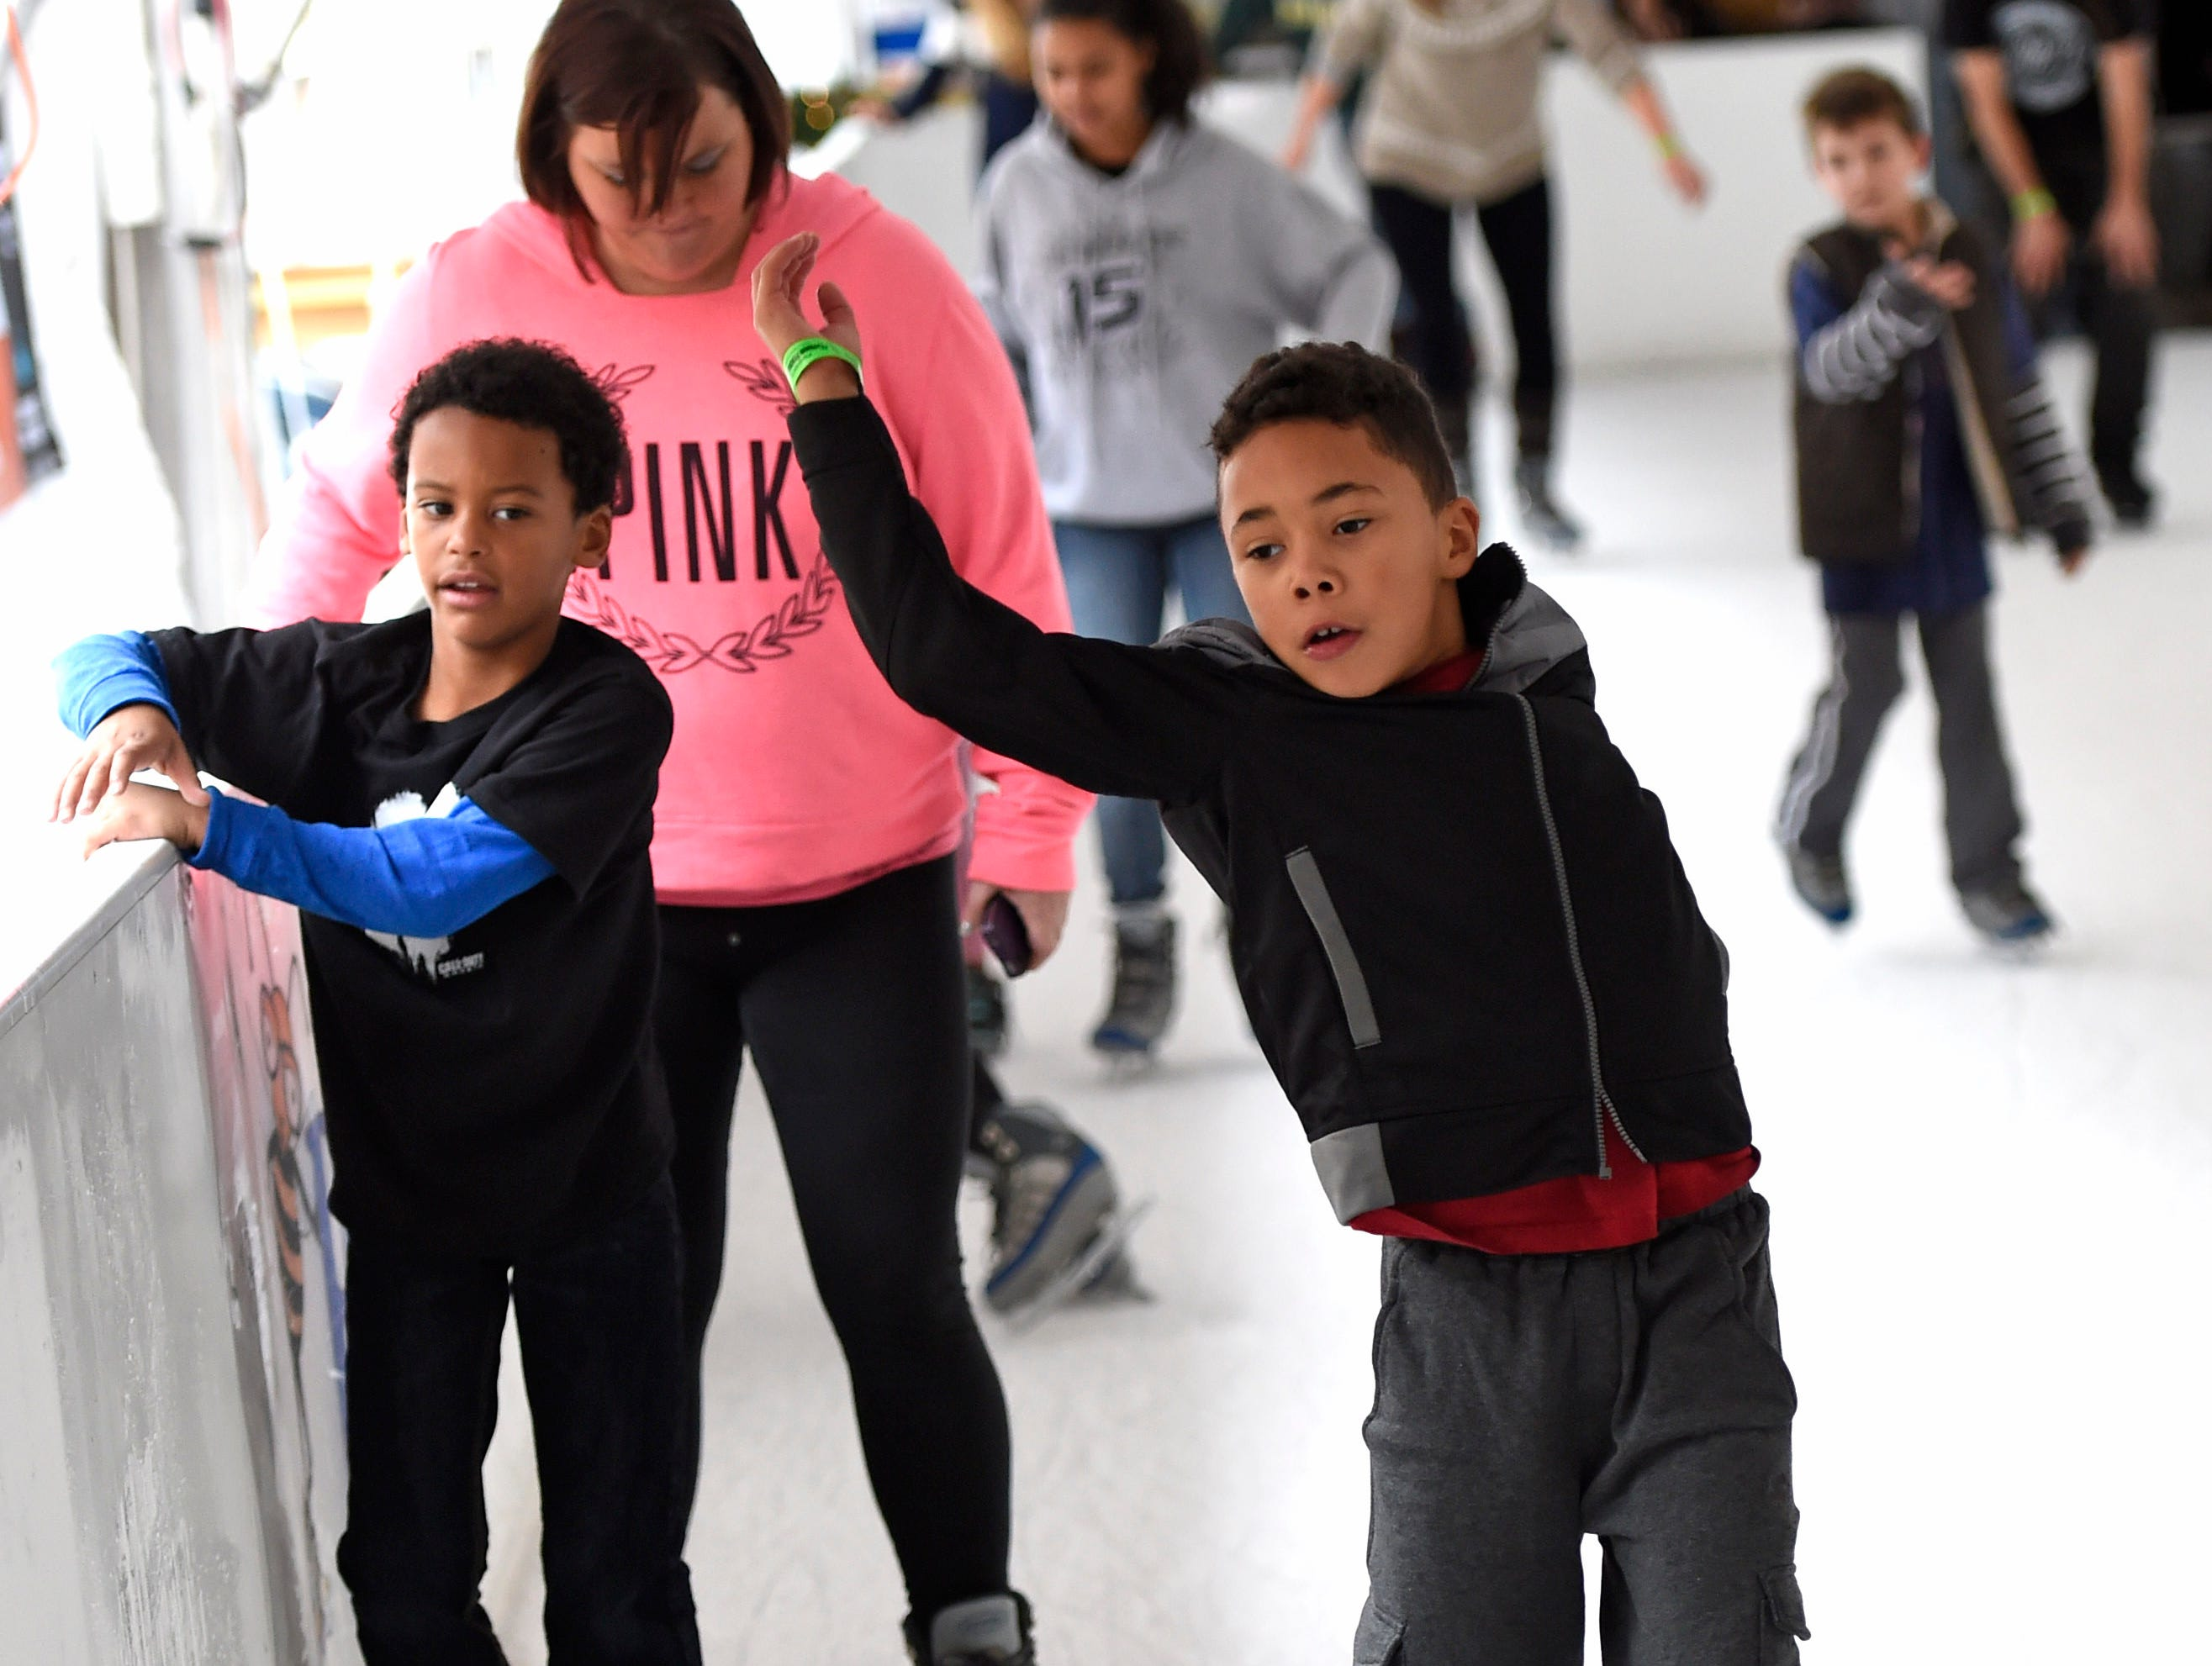 Malachi Kirk, center, wobbles as he ice skates for the first time in Market Square on Christmas Eve, Wednesday, Dec. 24, 2014.